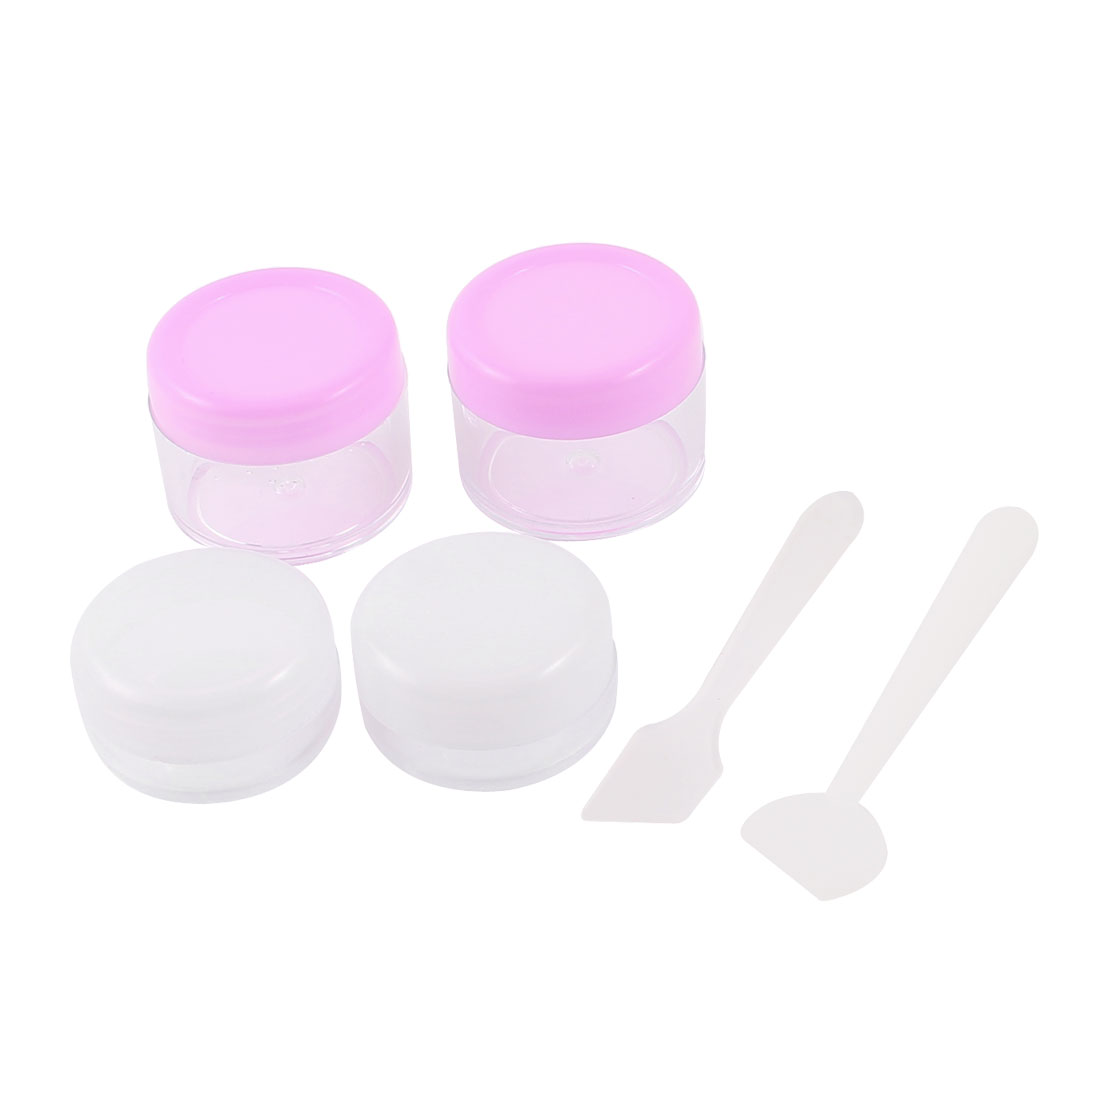 4PCS Pink White Clear Portable Empty Jar Pot Round Plastic Makeup Cosmetic Bottle Cream Container 20ml 10ml for Lady